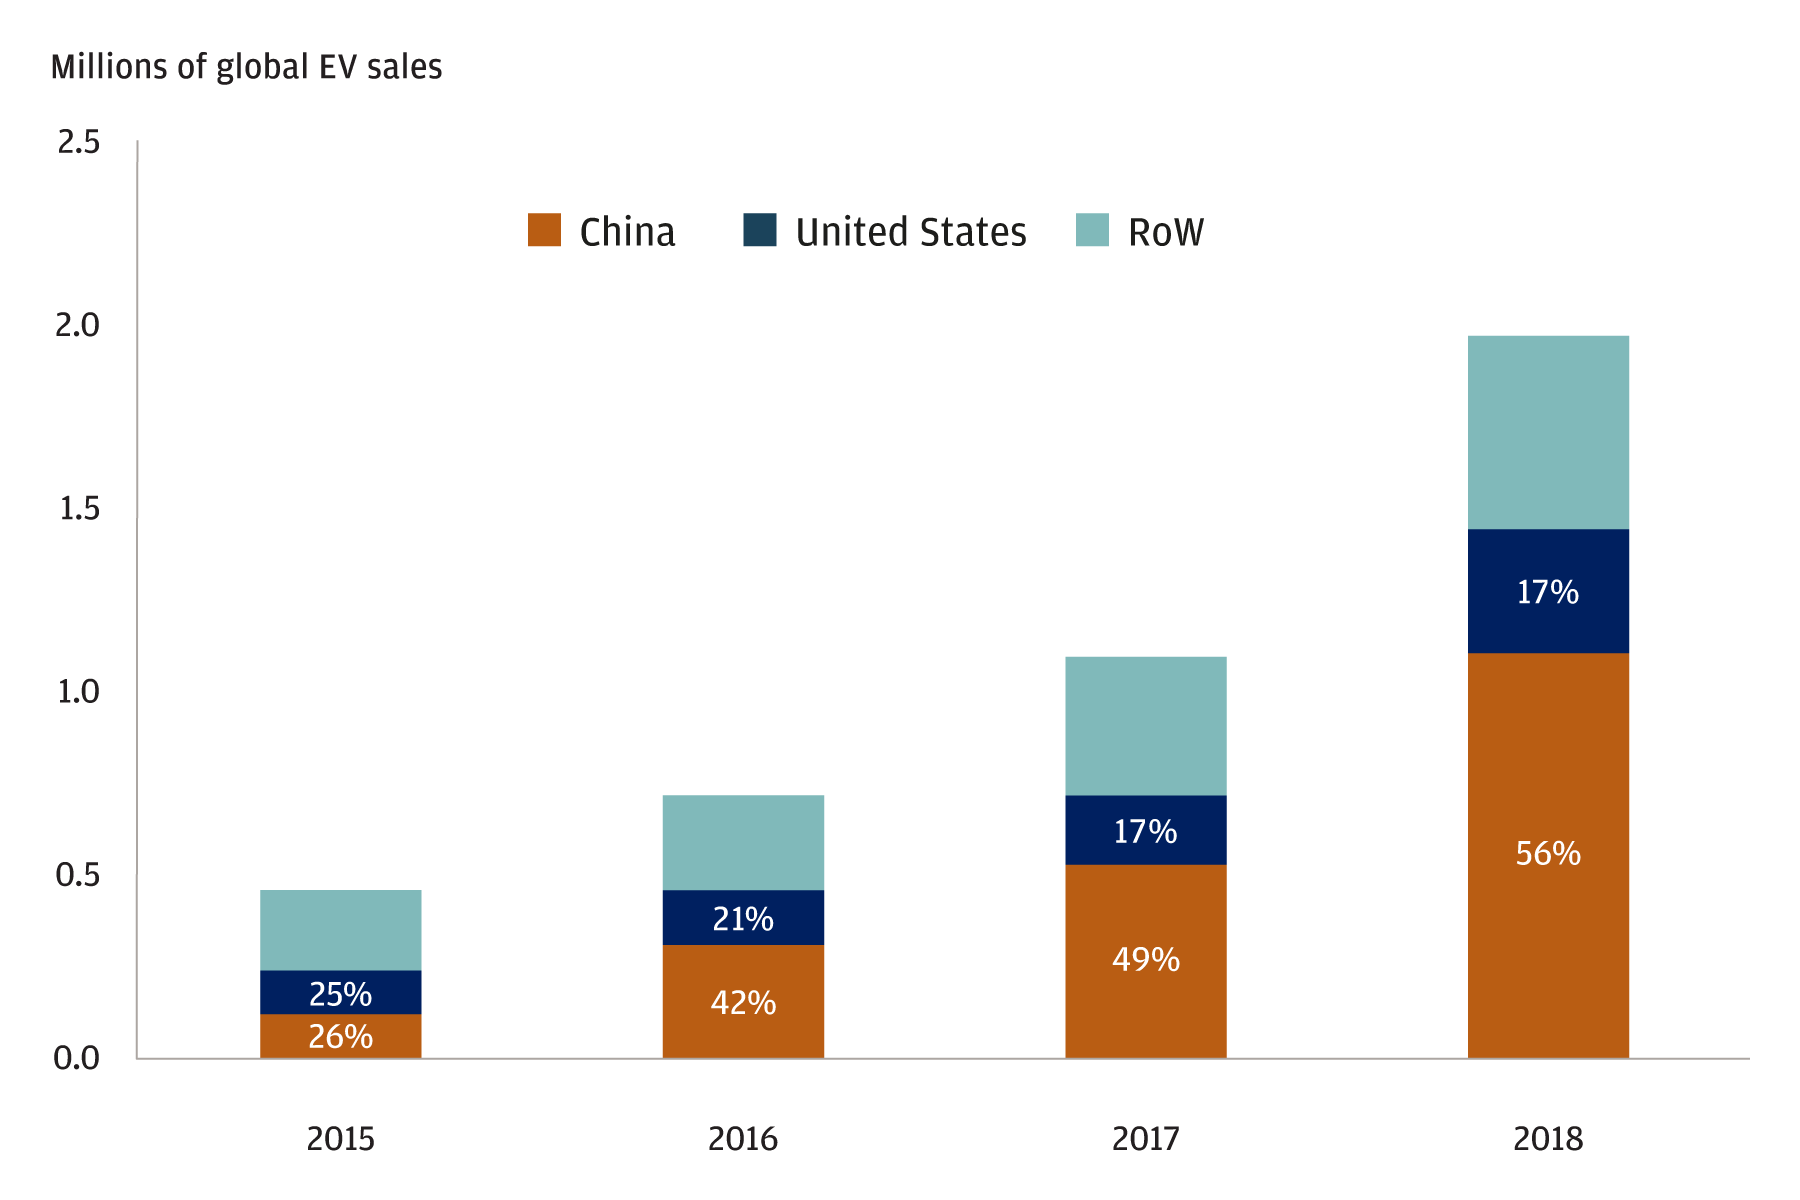 China accounts for over half of global EV sales